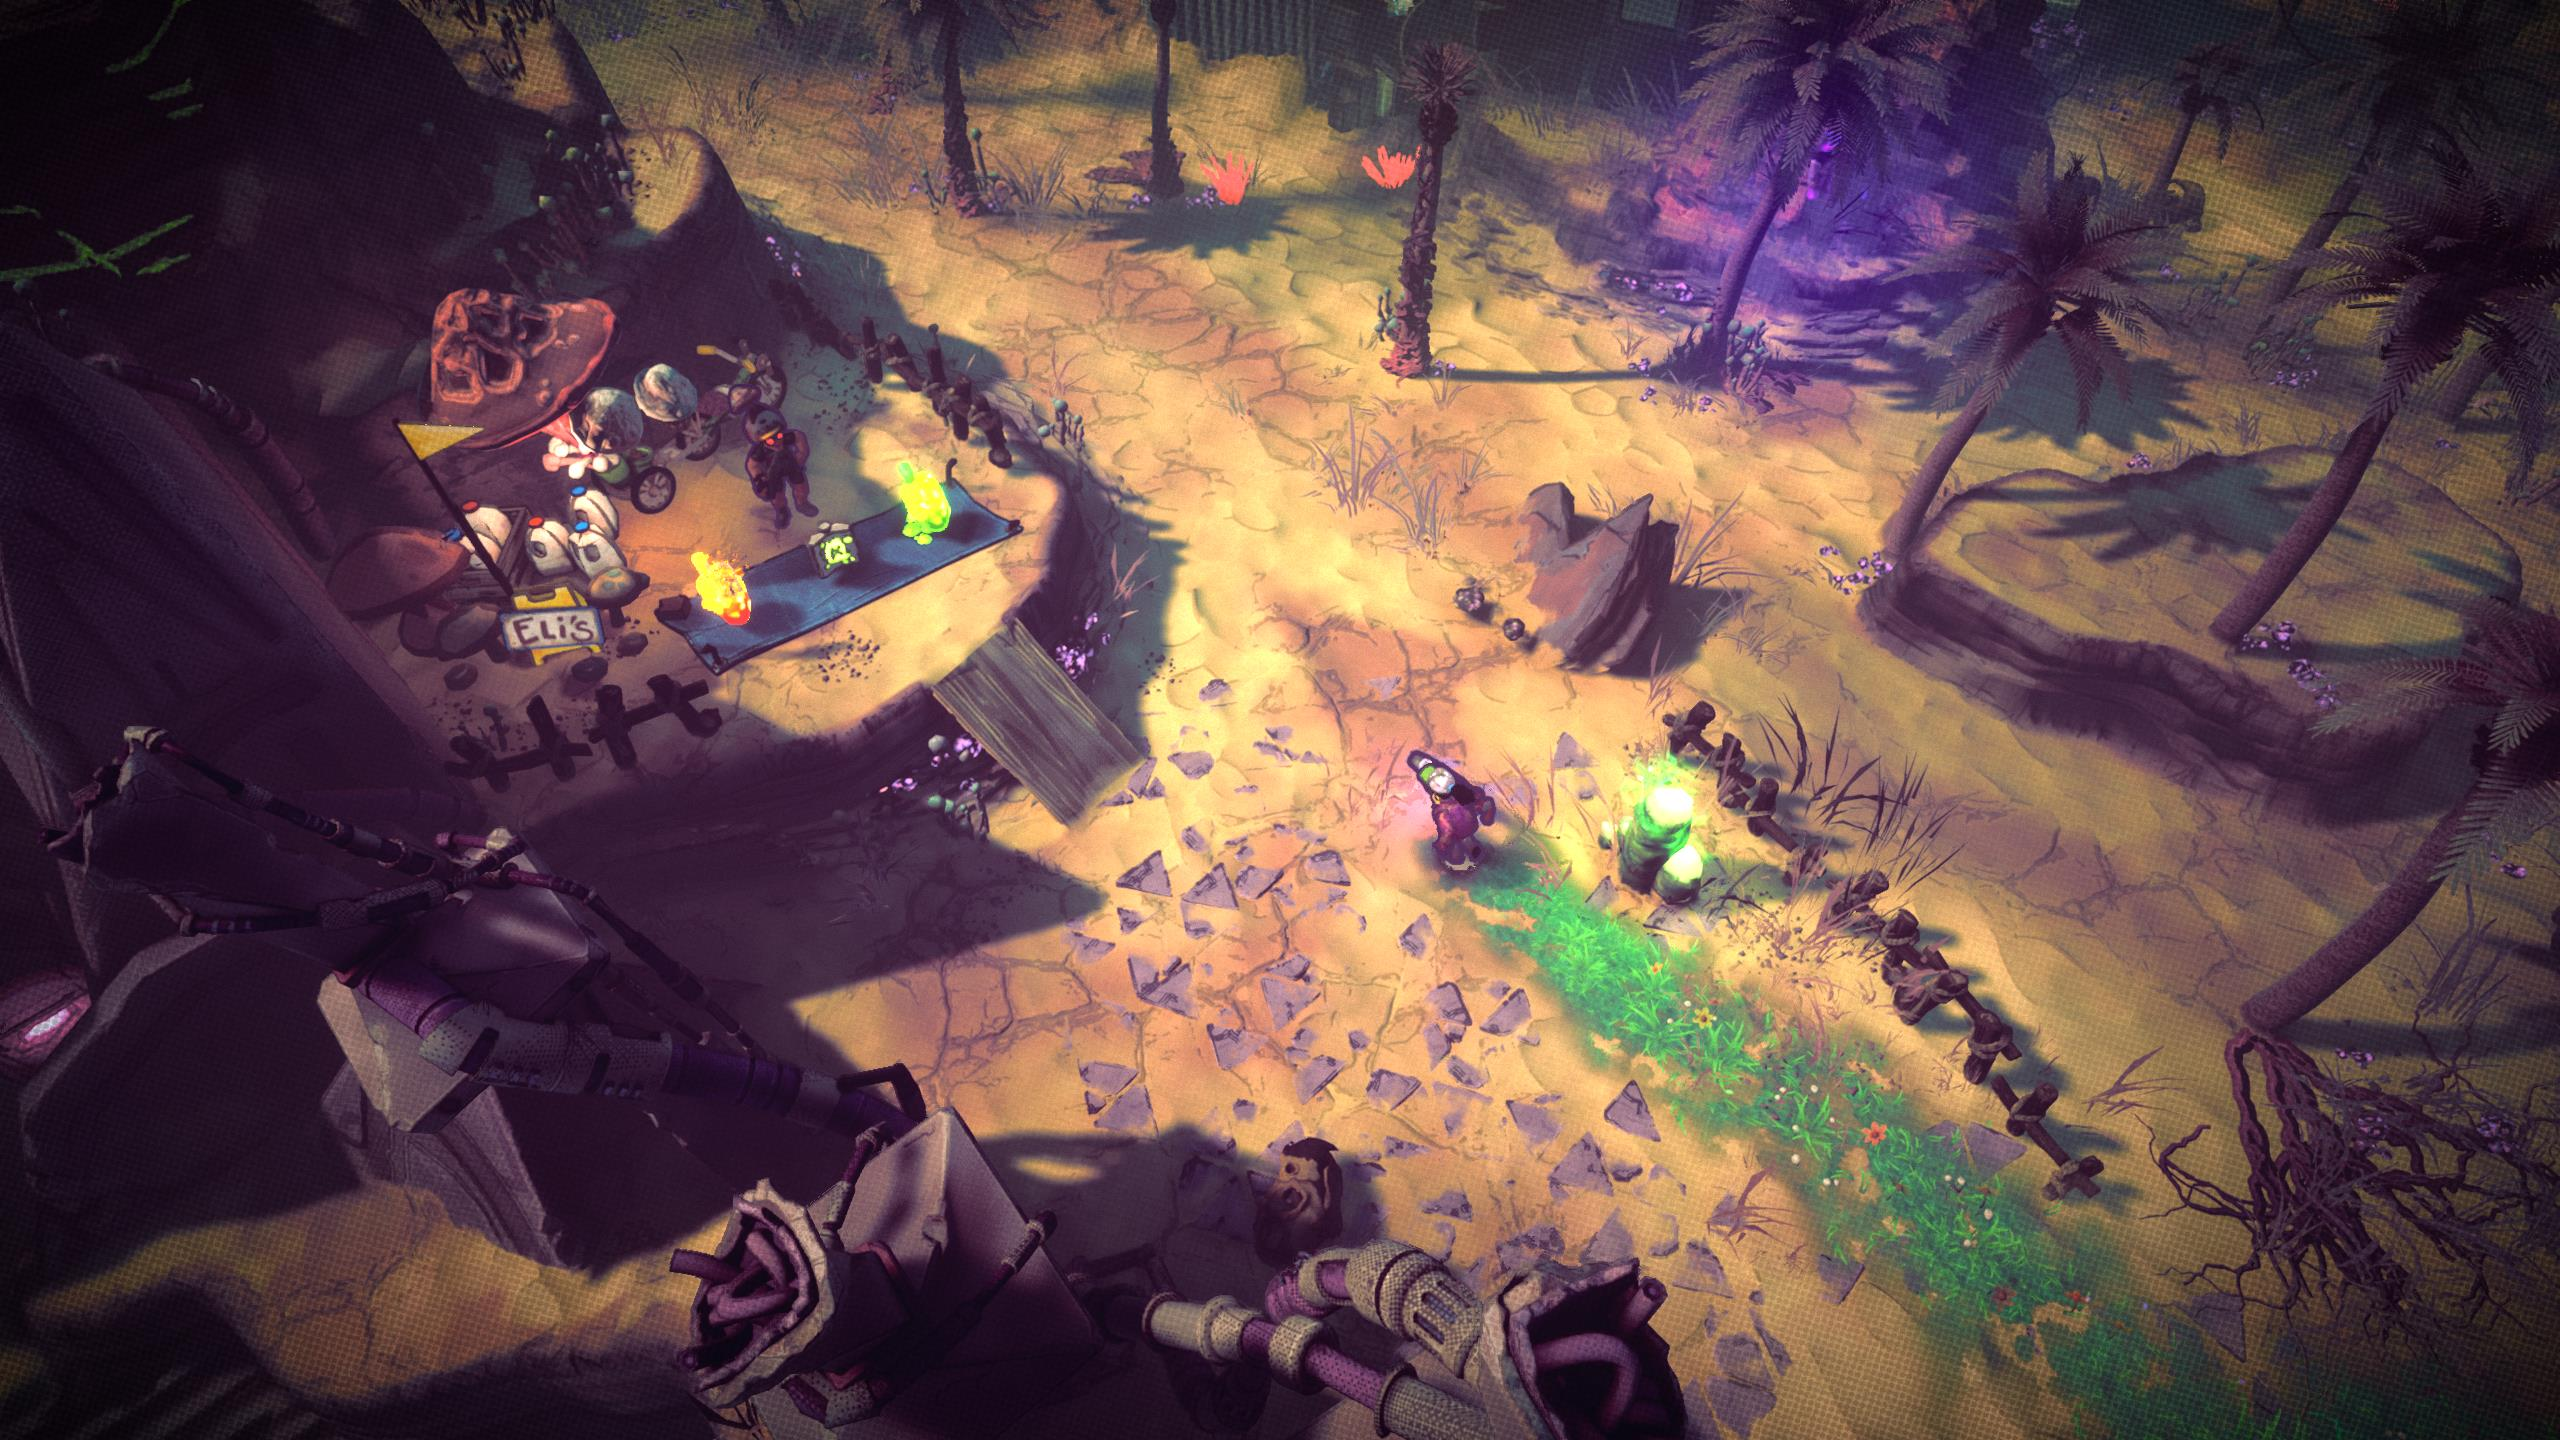 Rad is an action roguelike from Double Fine - VG247